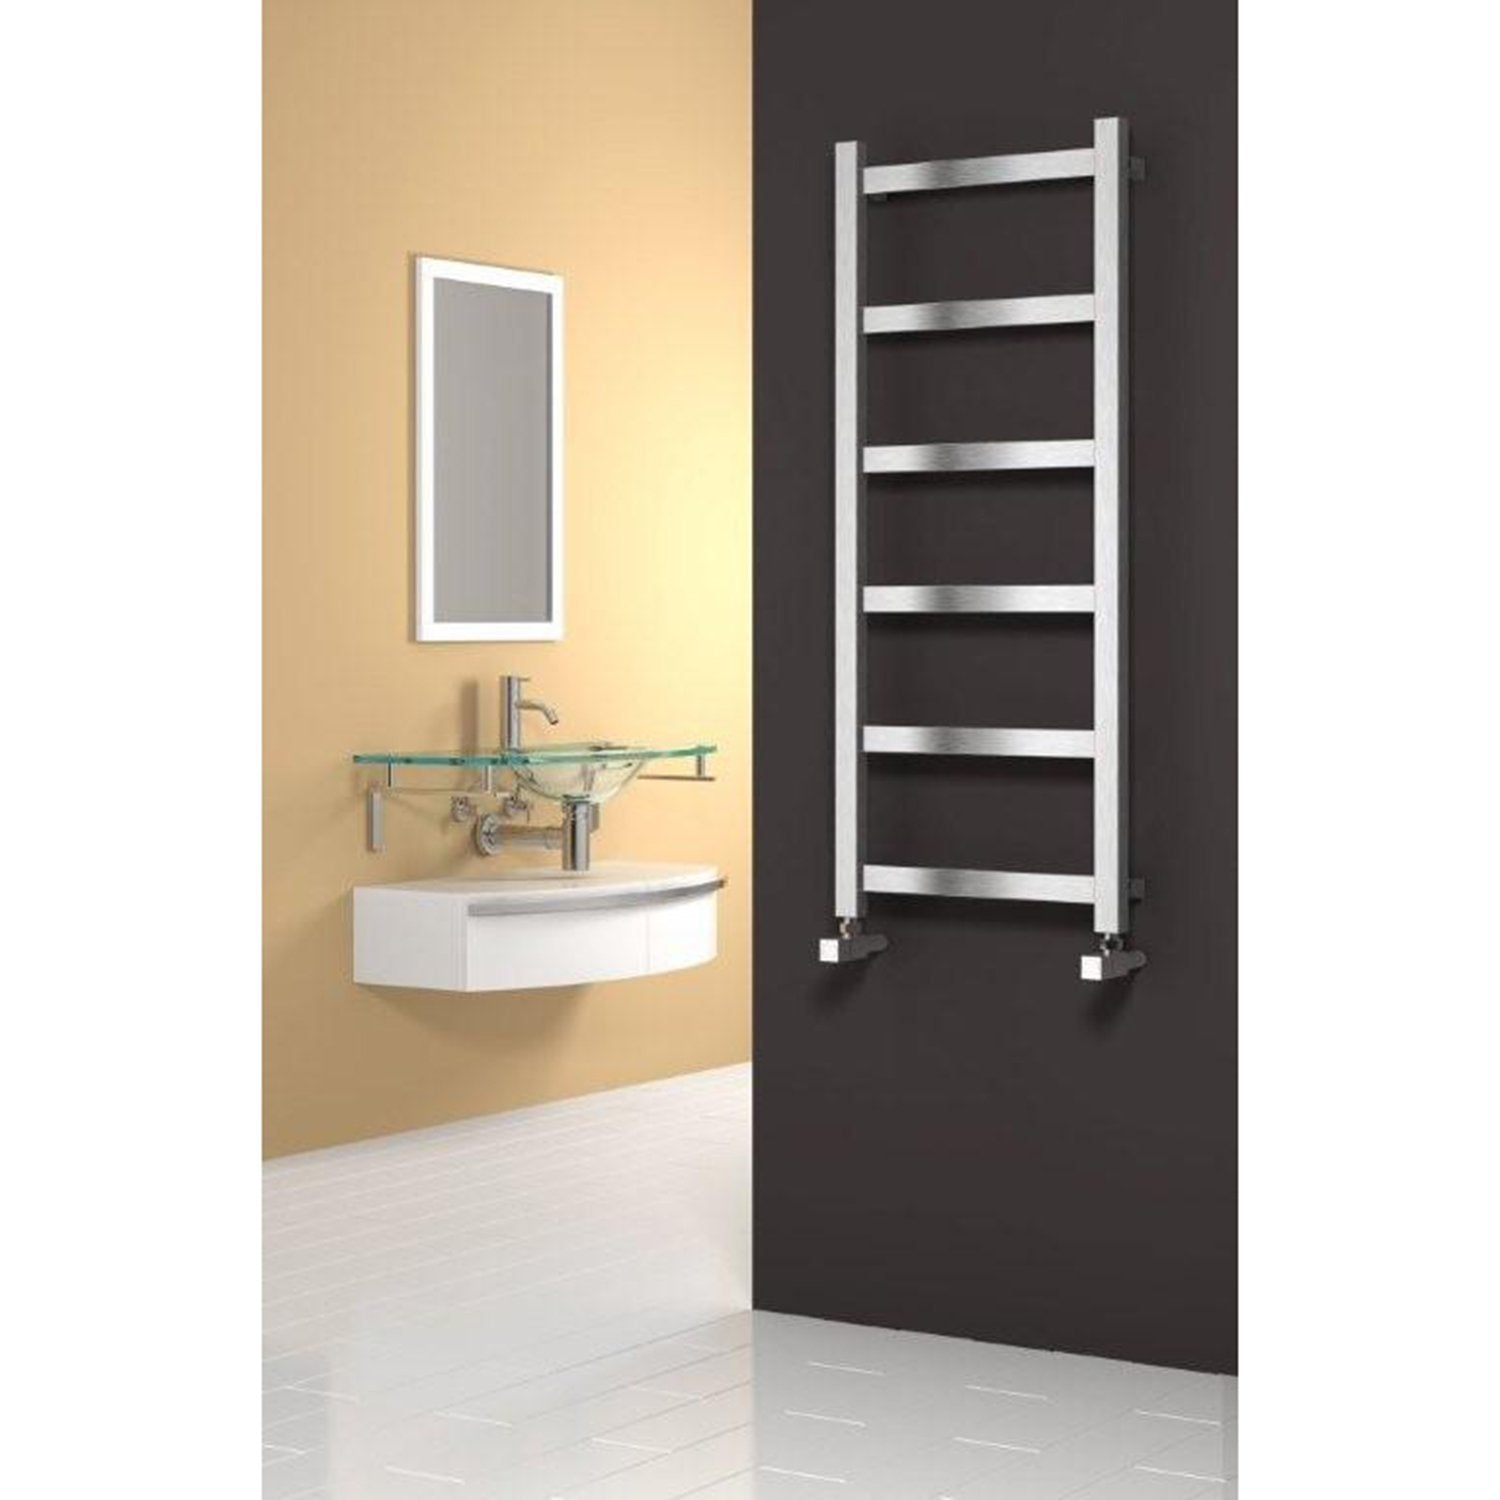 Reina Designer Mina Vertical Heated Towel Rail Stainless Steel Radiator